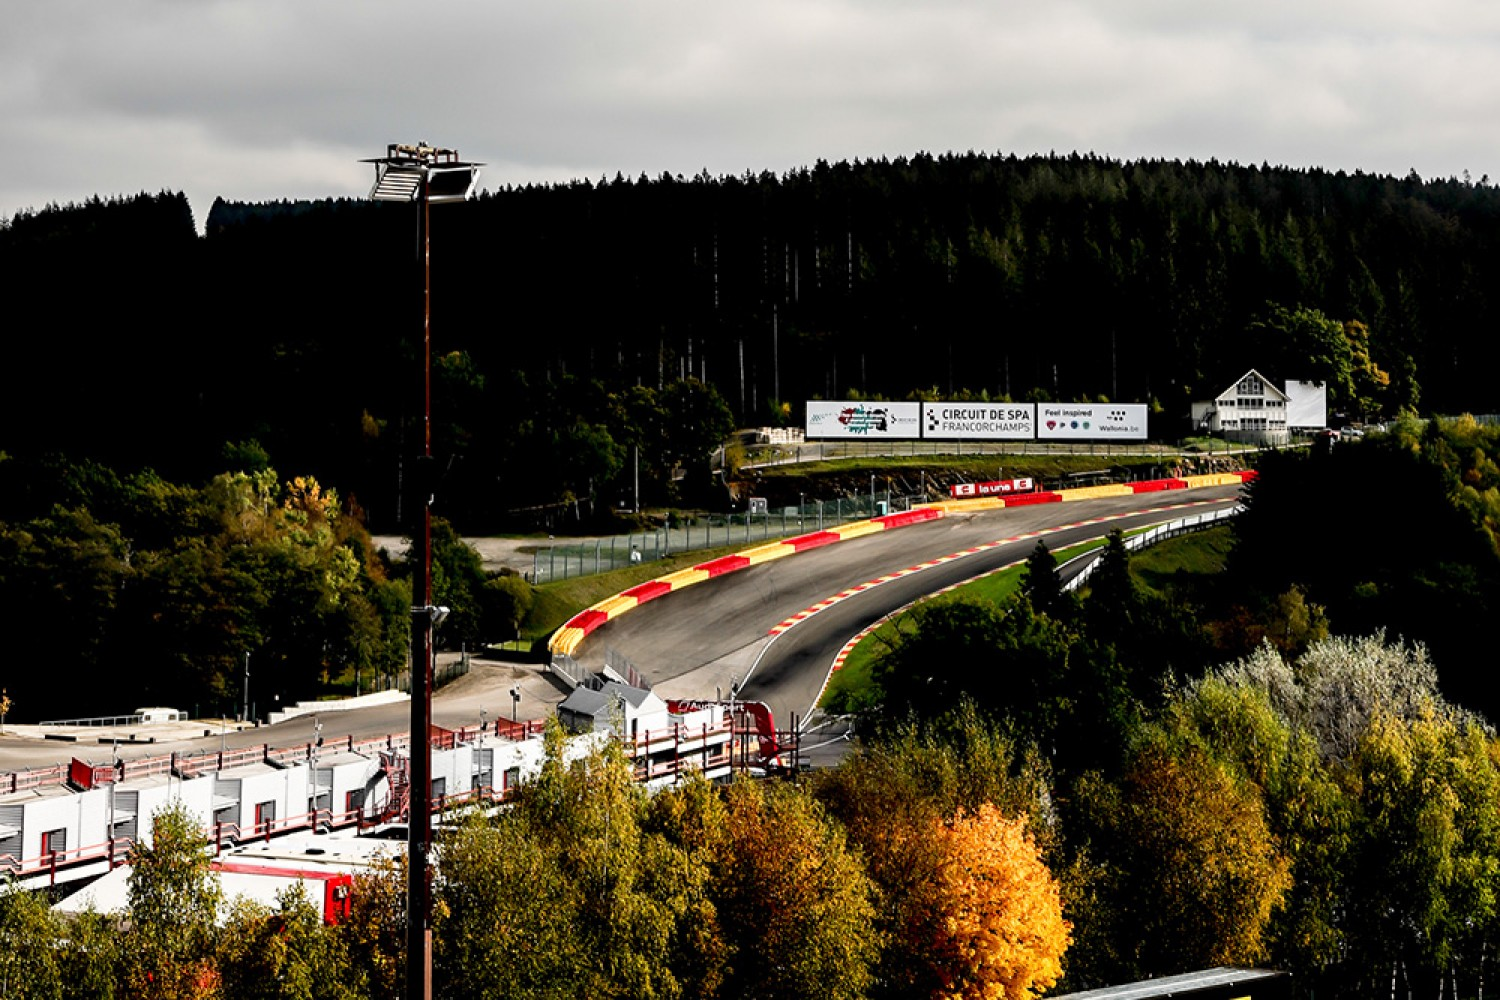 Total 24 Hours of Spa poised for epic Intercontinental GT Challenge Powered by Pirelli battle